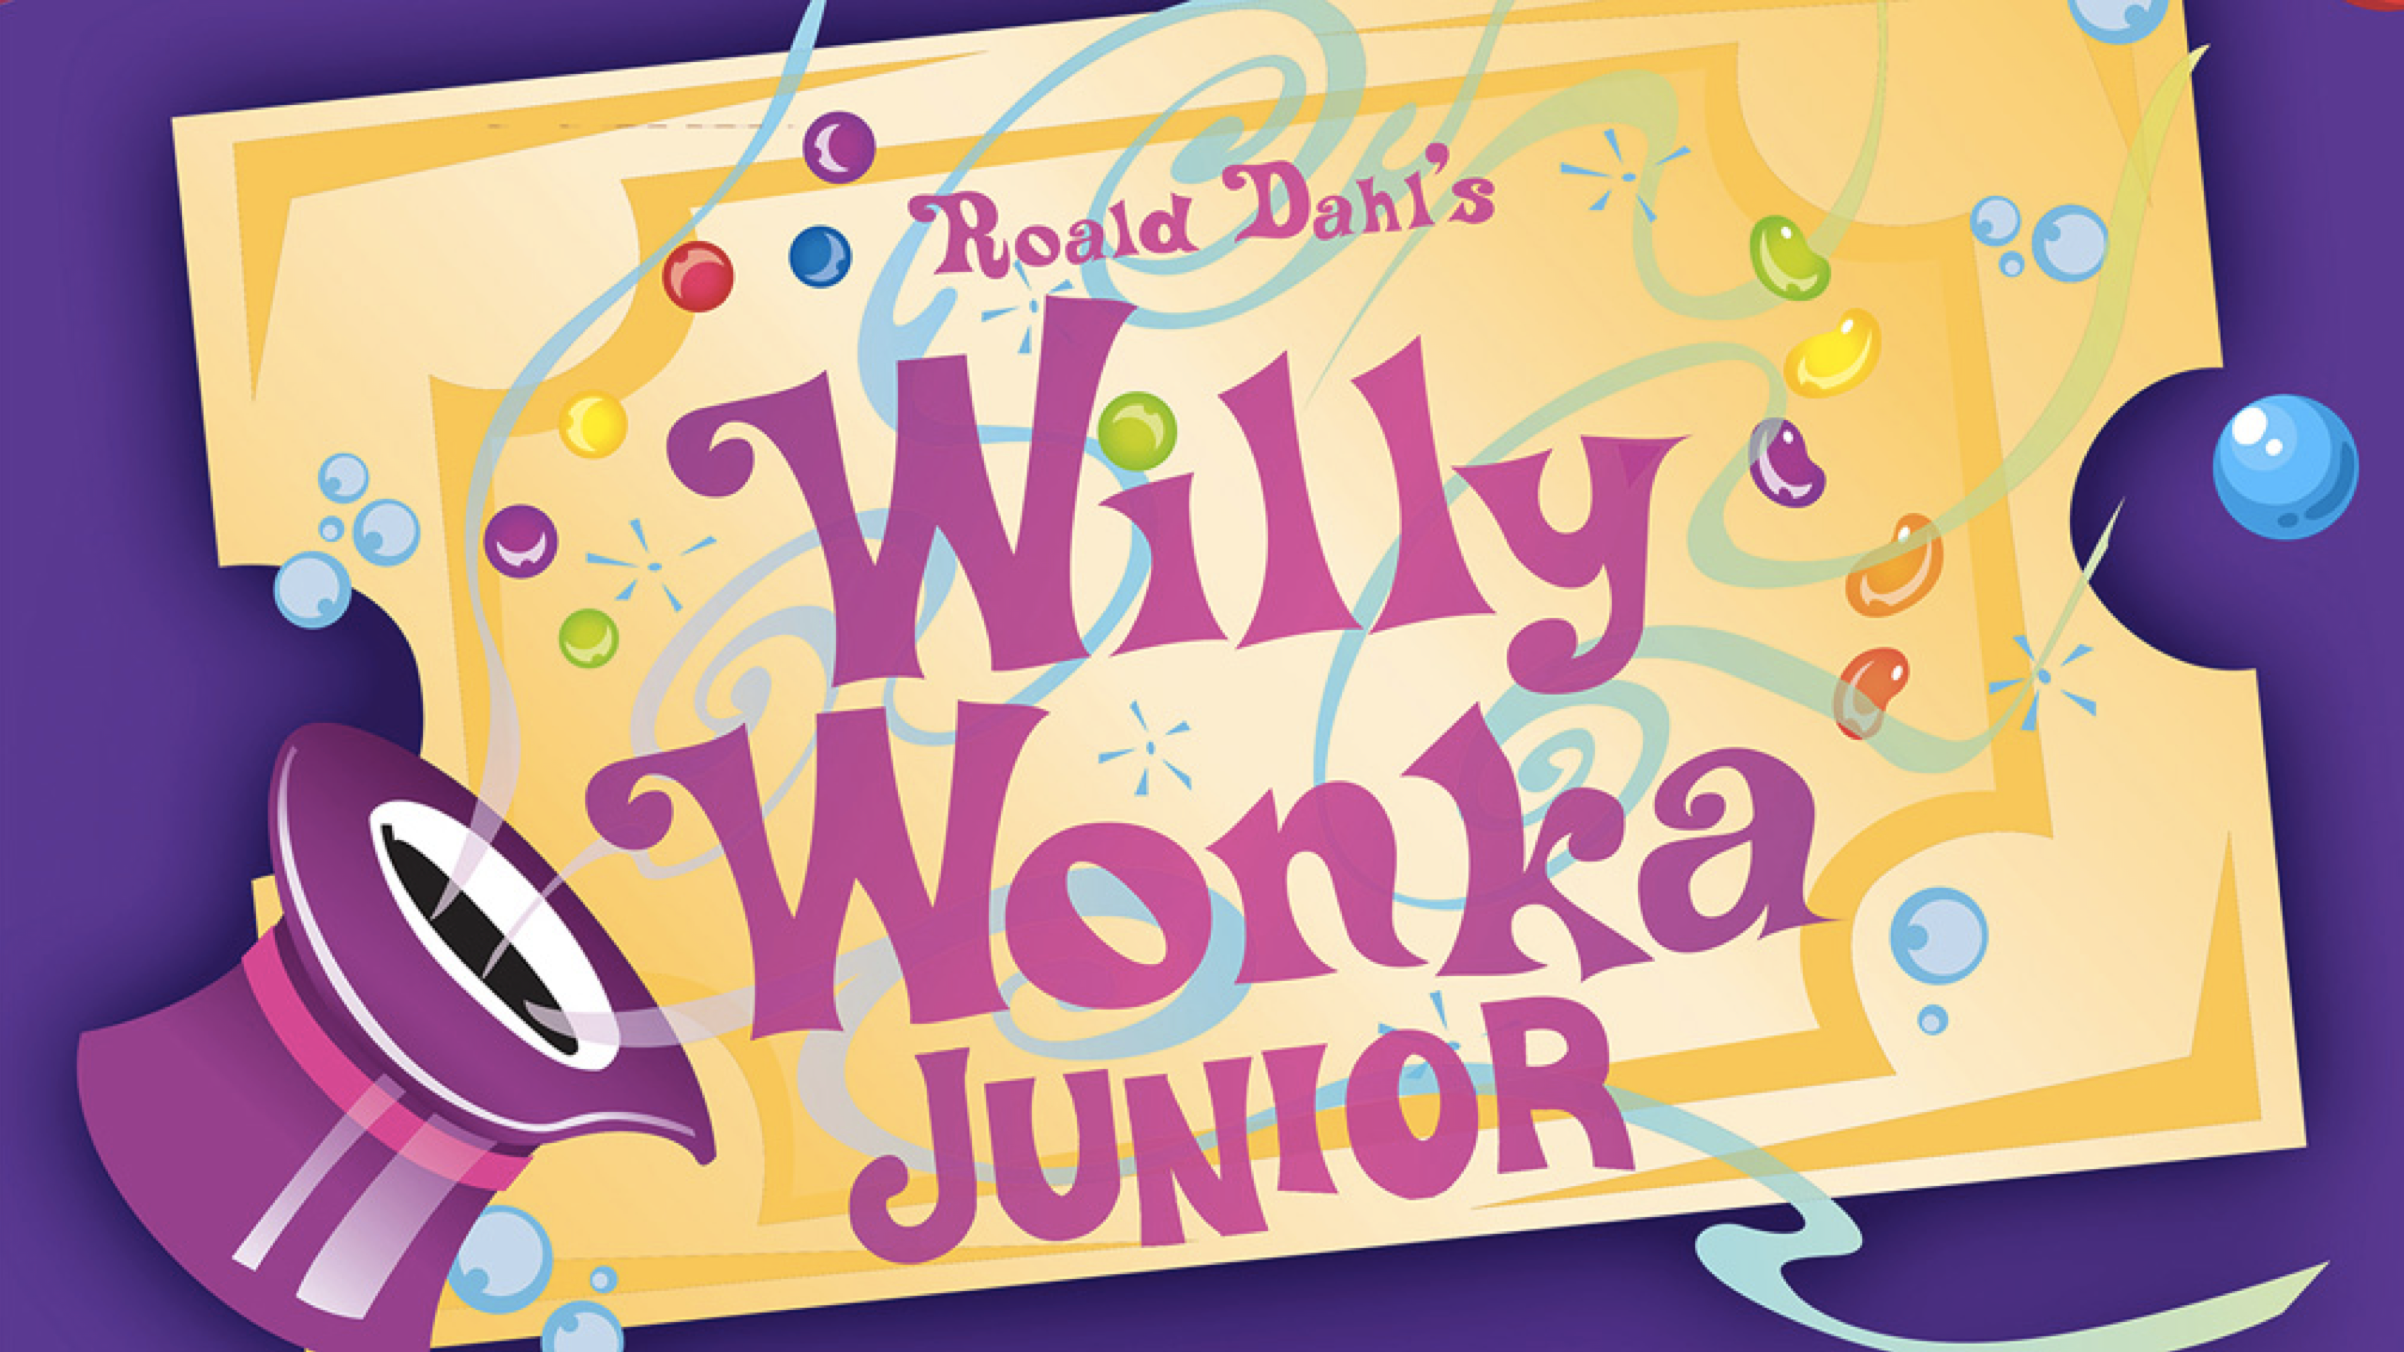 Willy wonka jr clipart png free stock Roald Dahl\'s Willy Wonka Jr. png free stock